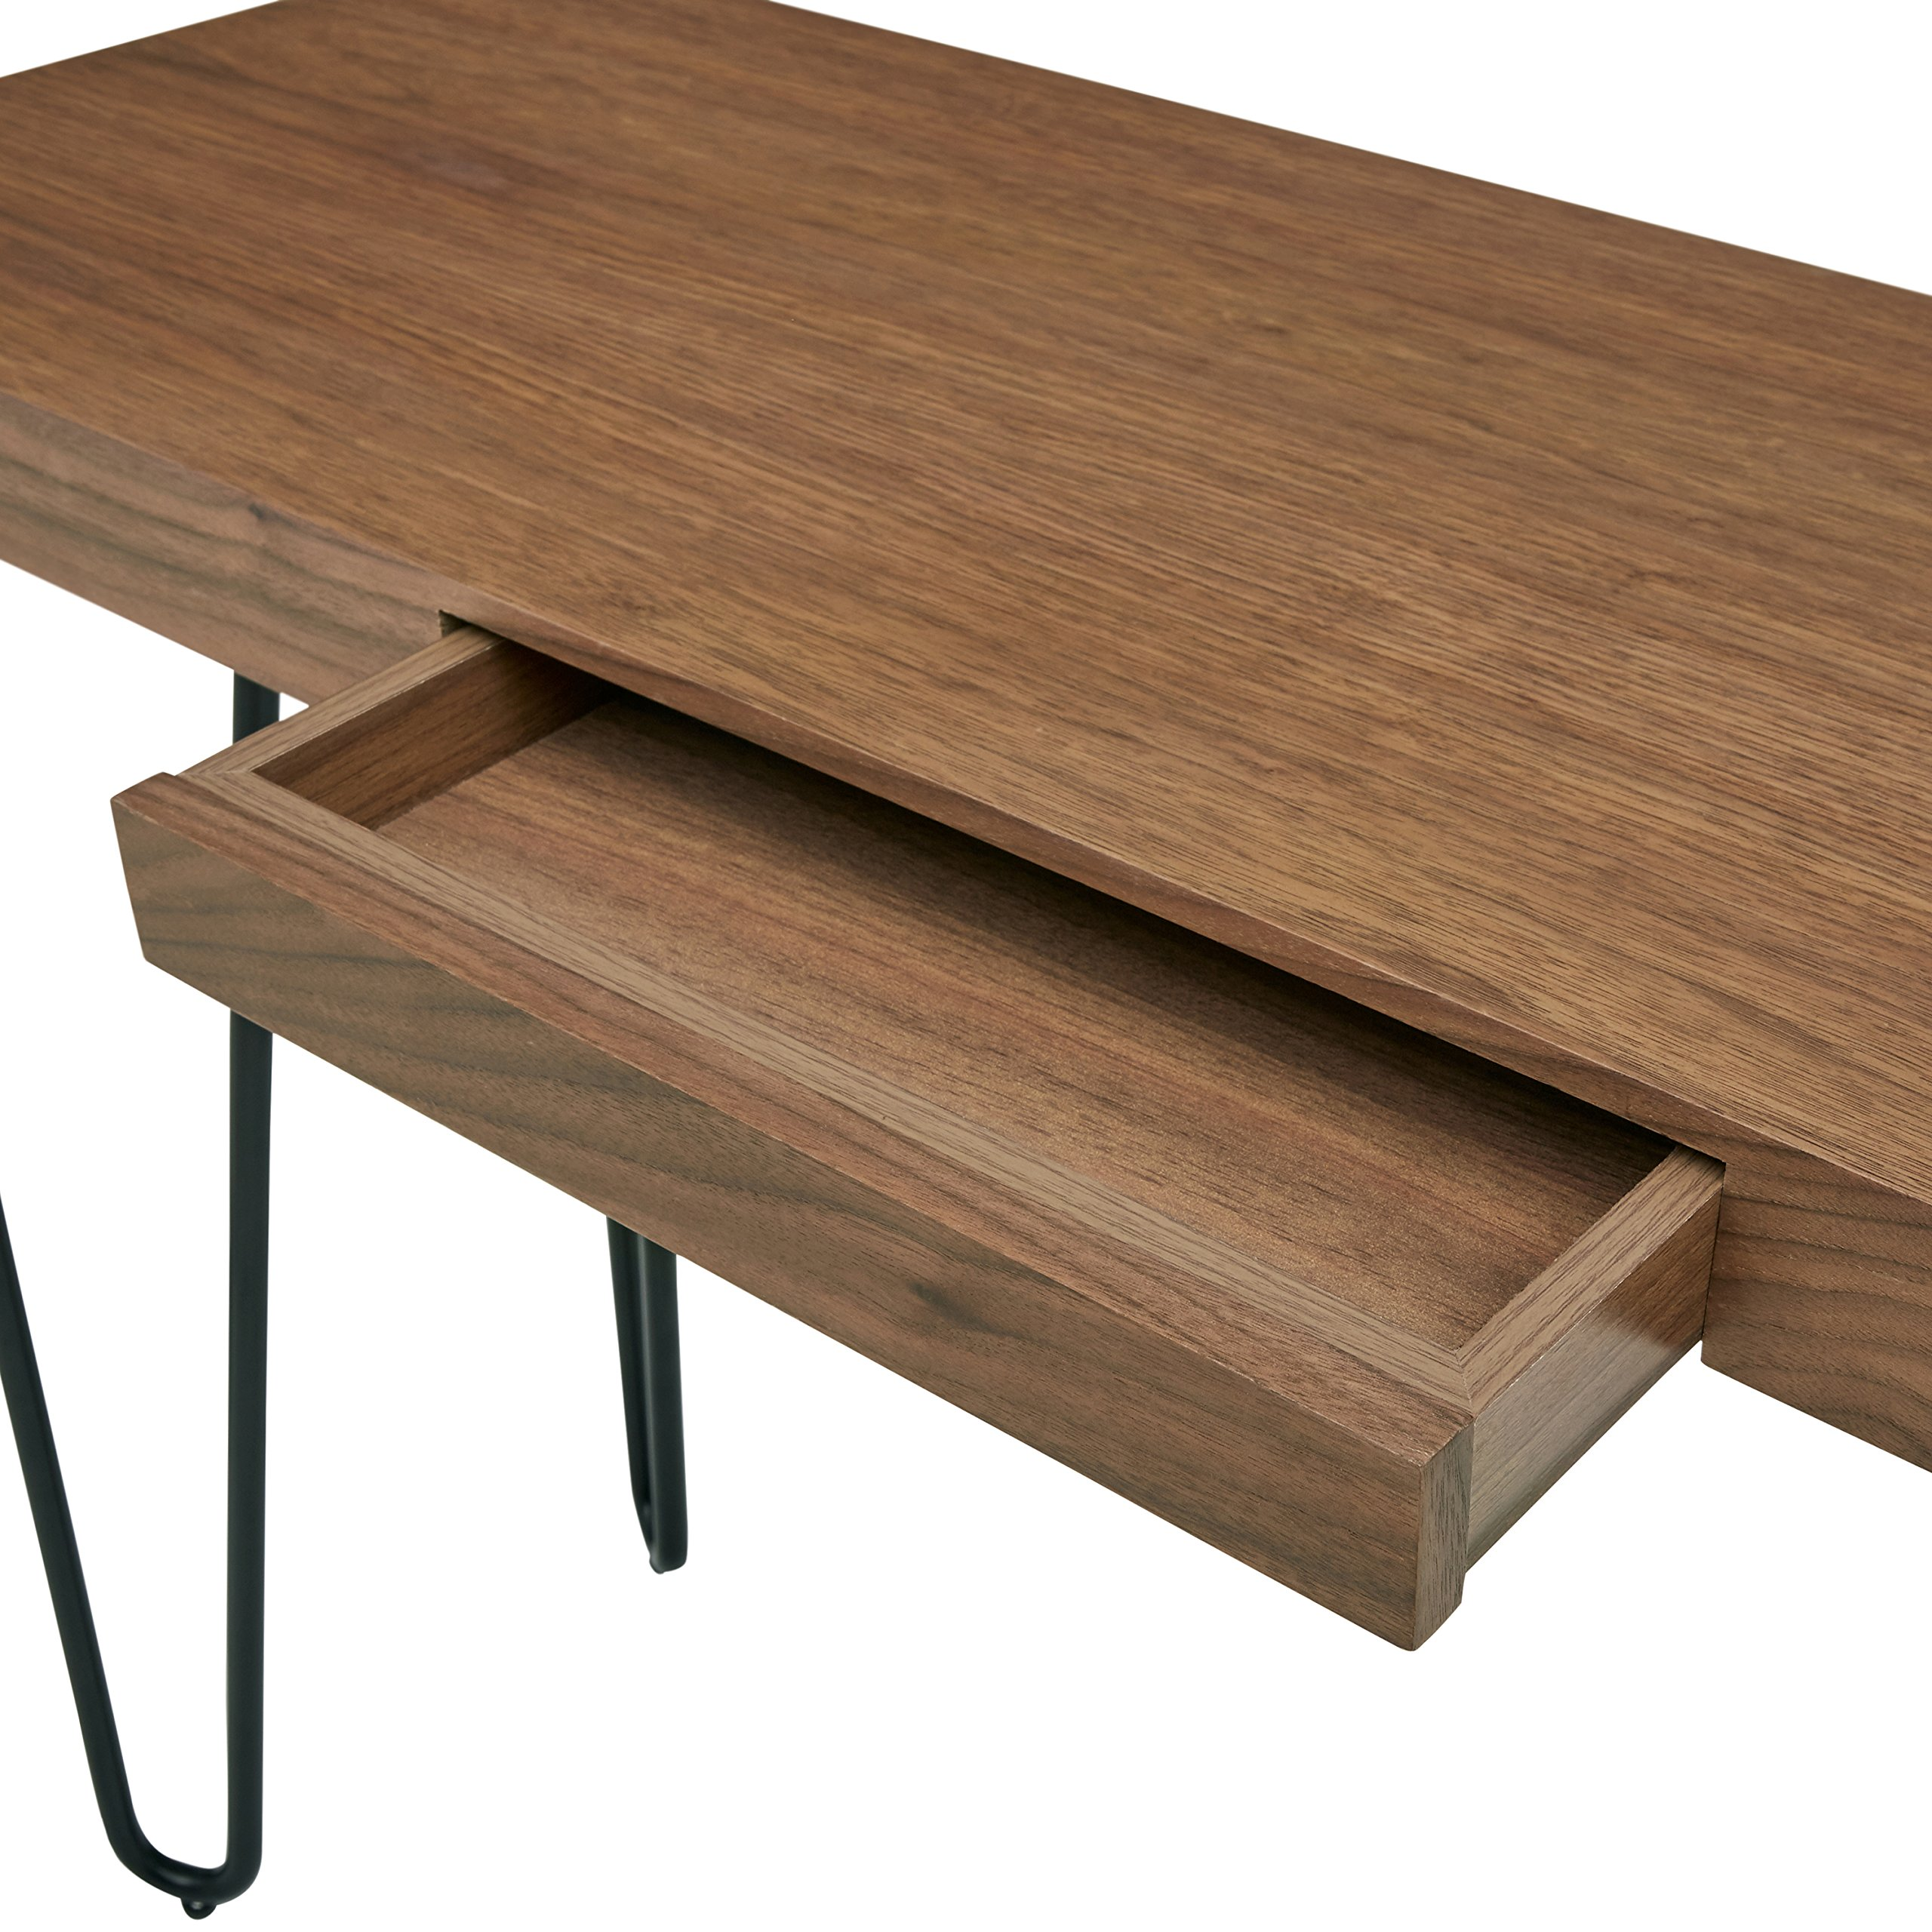 Rivet Hairpin Wood and Metal Tall 29.5'' Console Table, Walnut and Black by Rivet (Image #4)